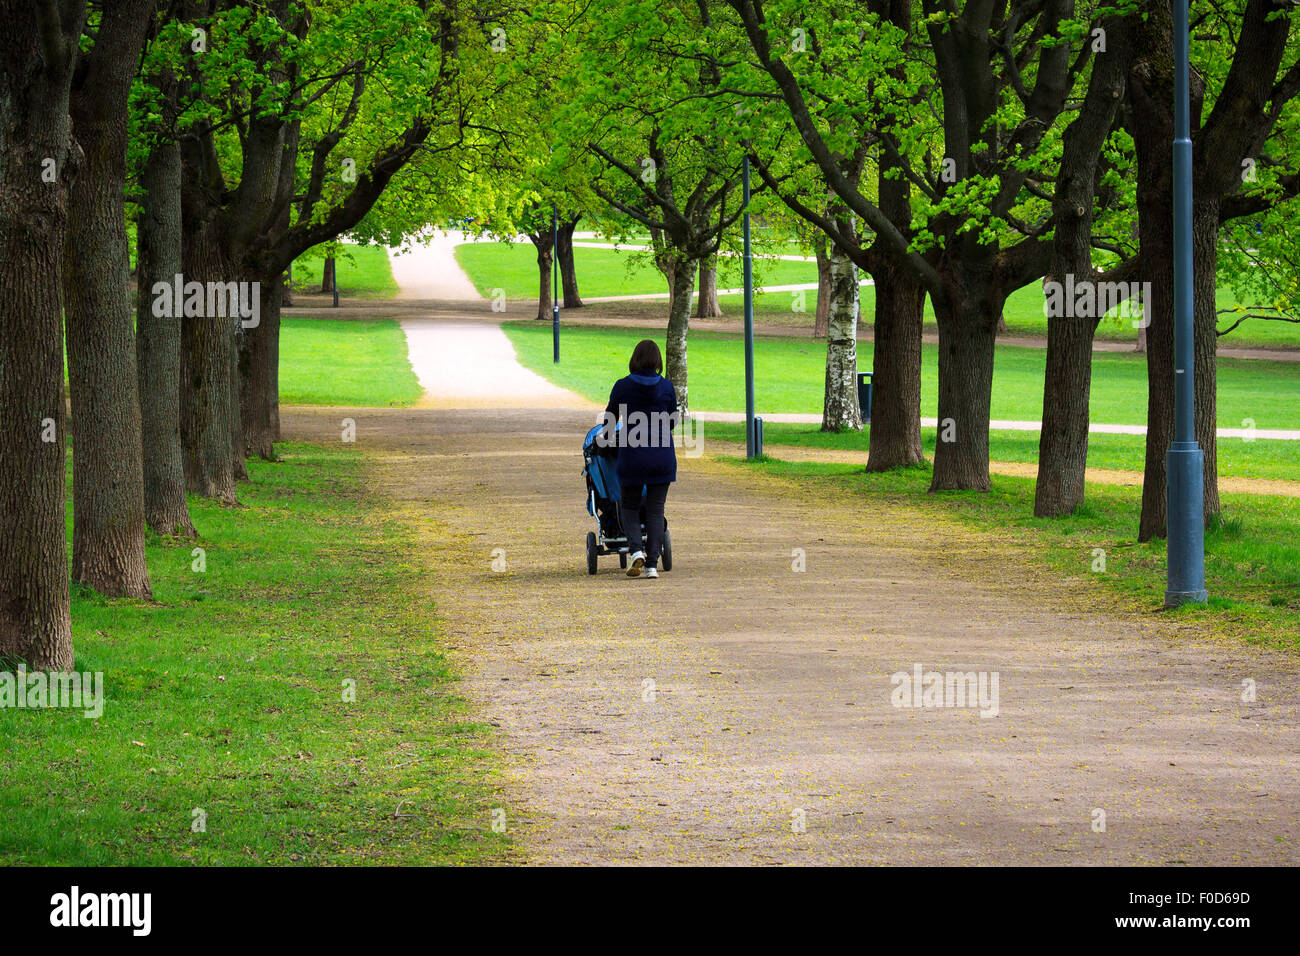 Woman with baby stroller walking in a city park - Stock Image